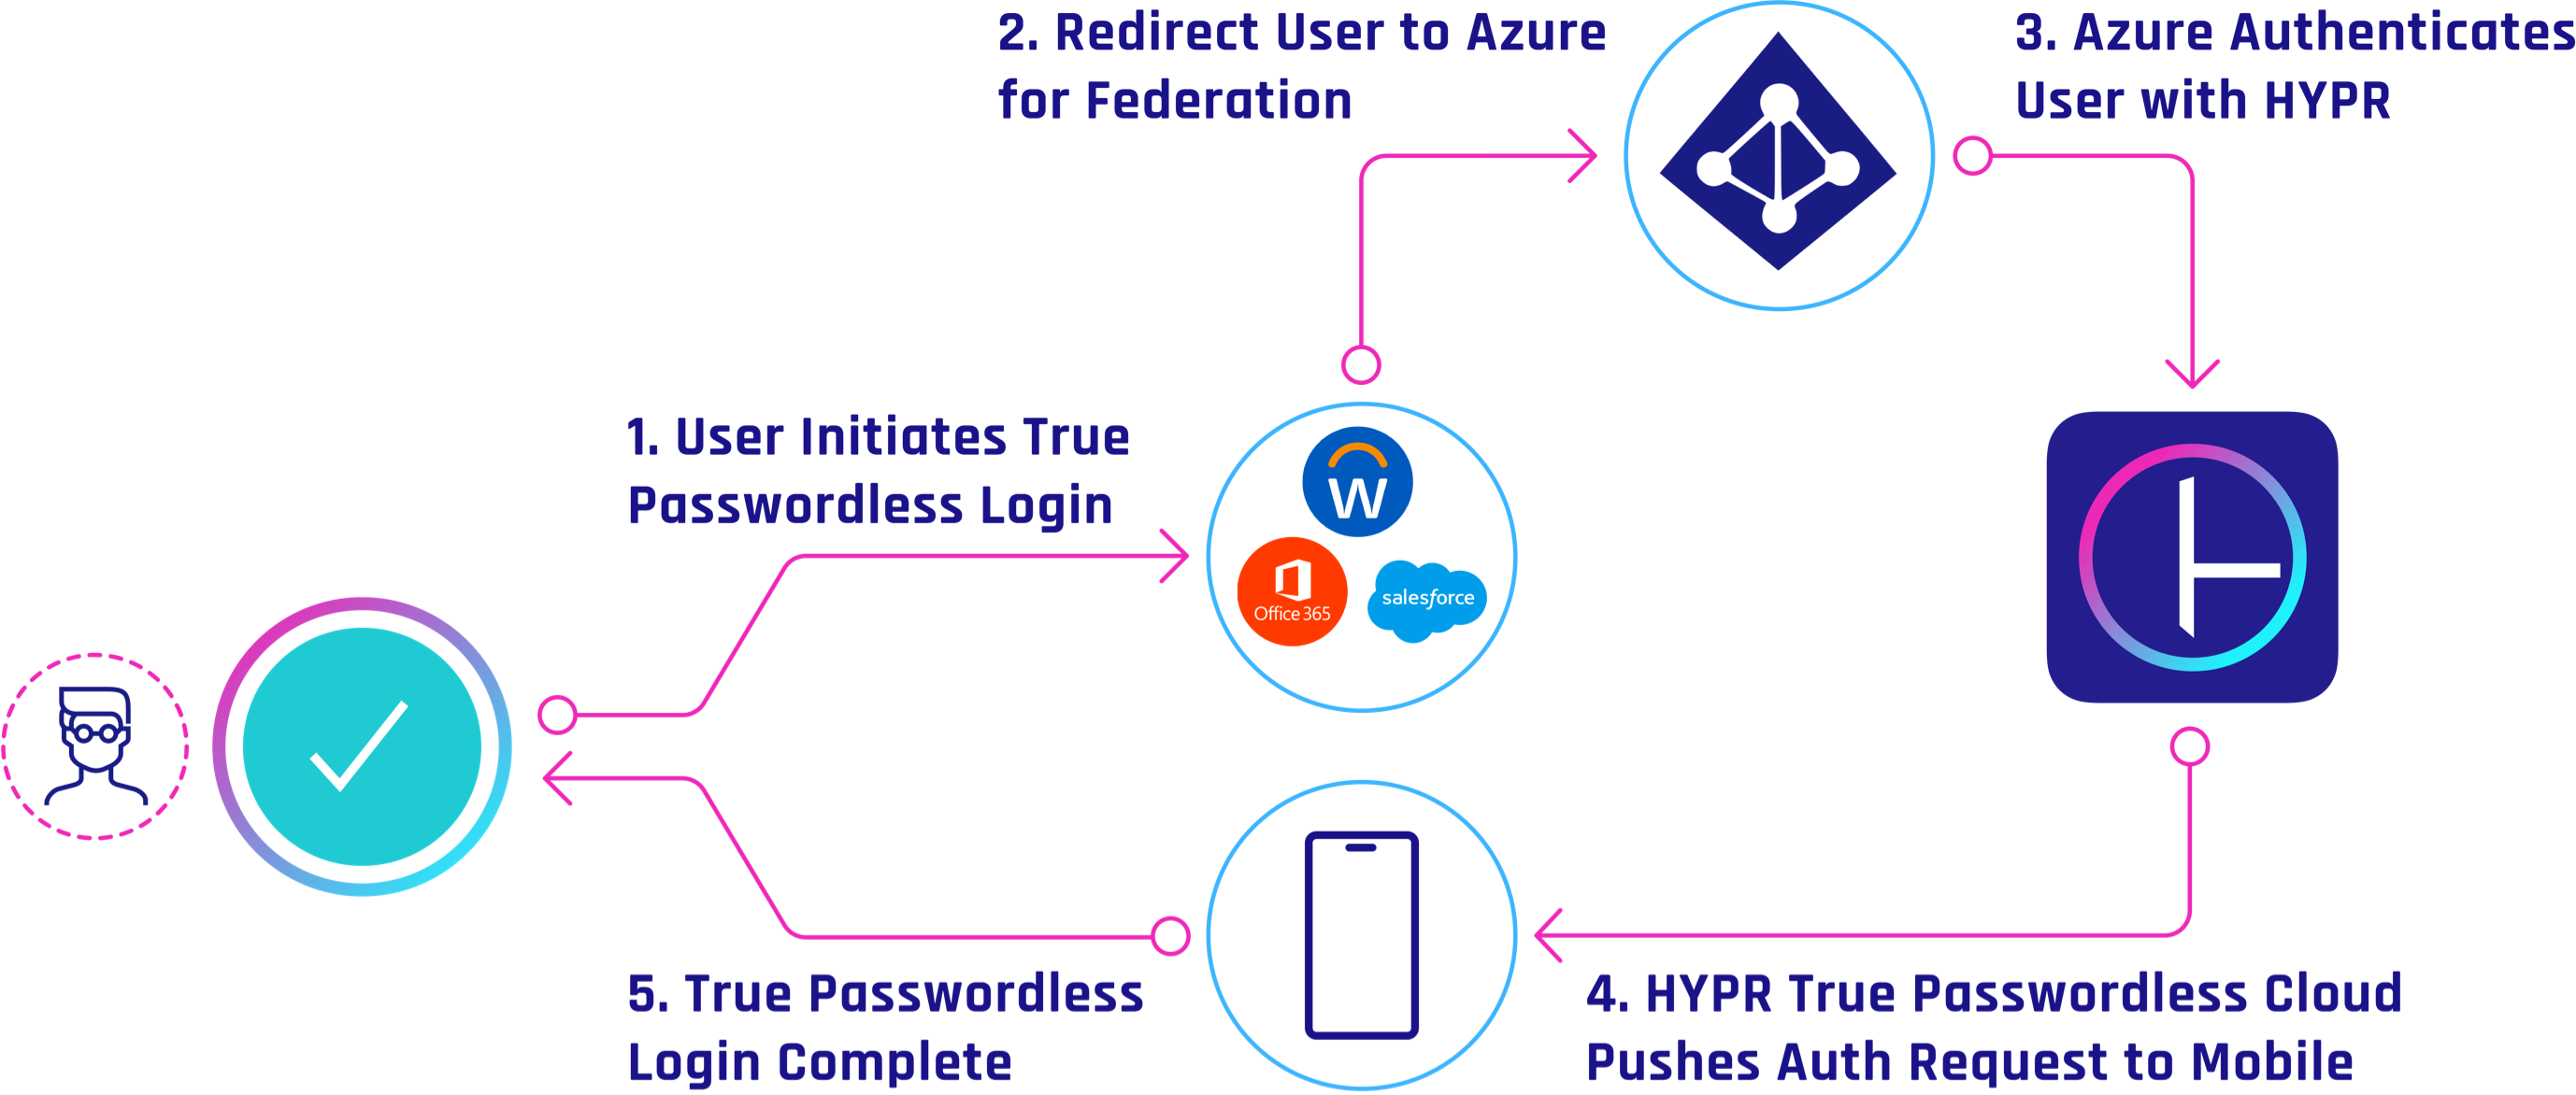 Azure AD Passwordless Authentication